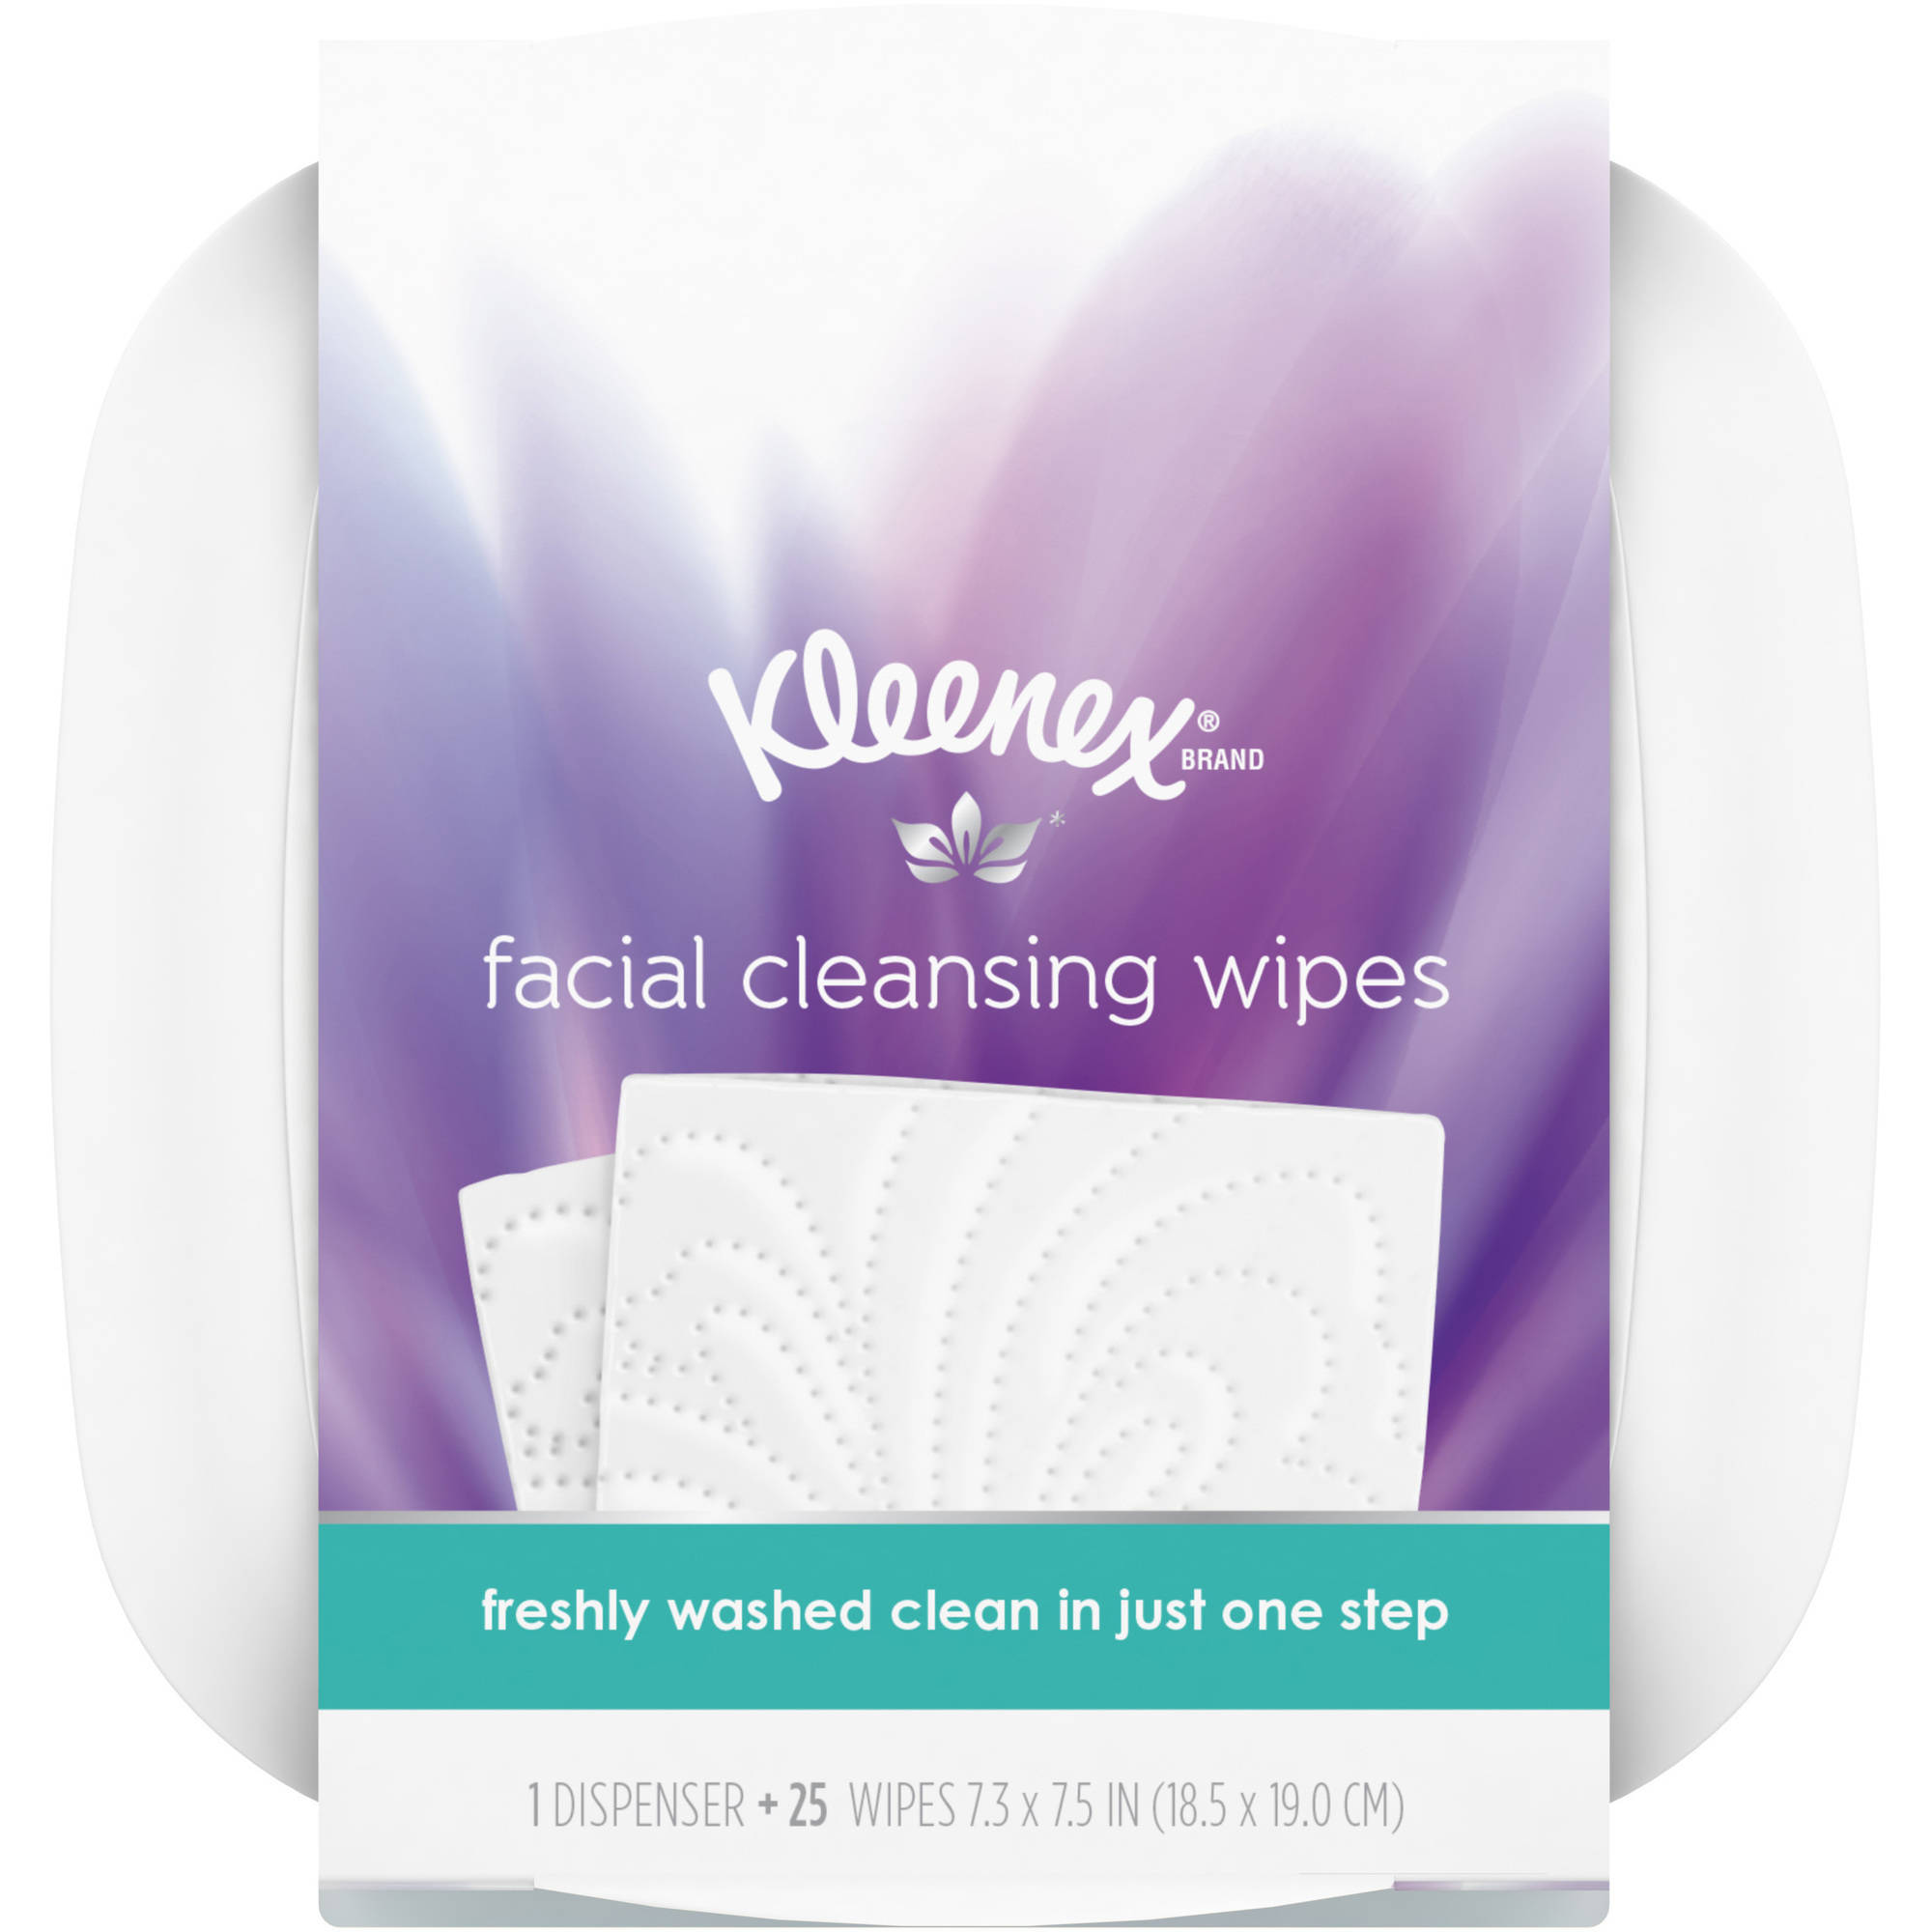 Kleenex Moist Facial Cleansing Wipes, Refillable Dispenser & Wipes